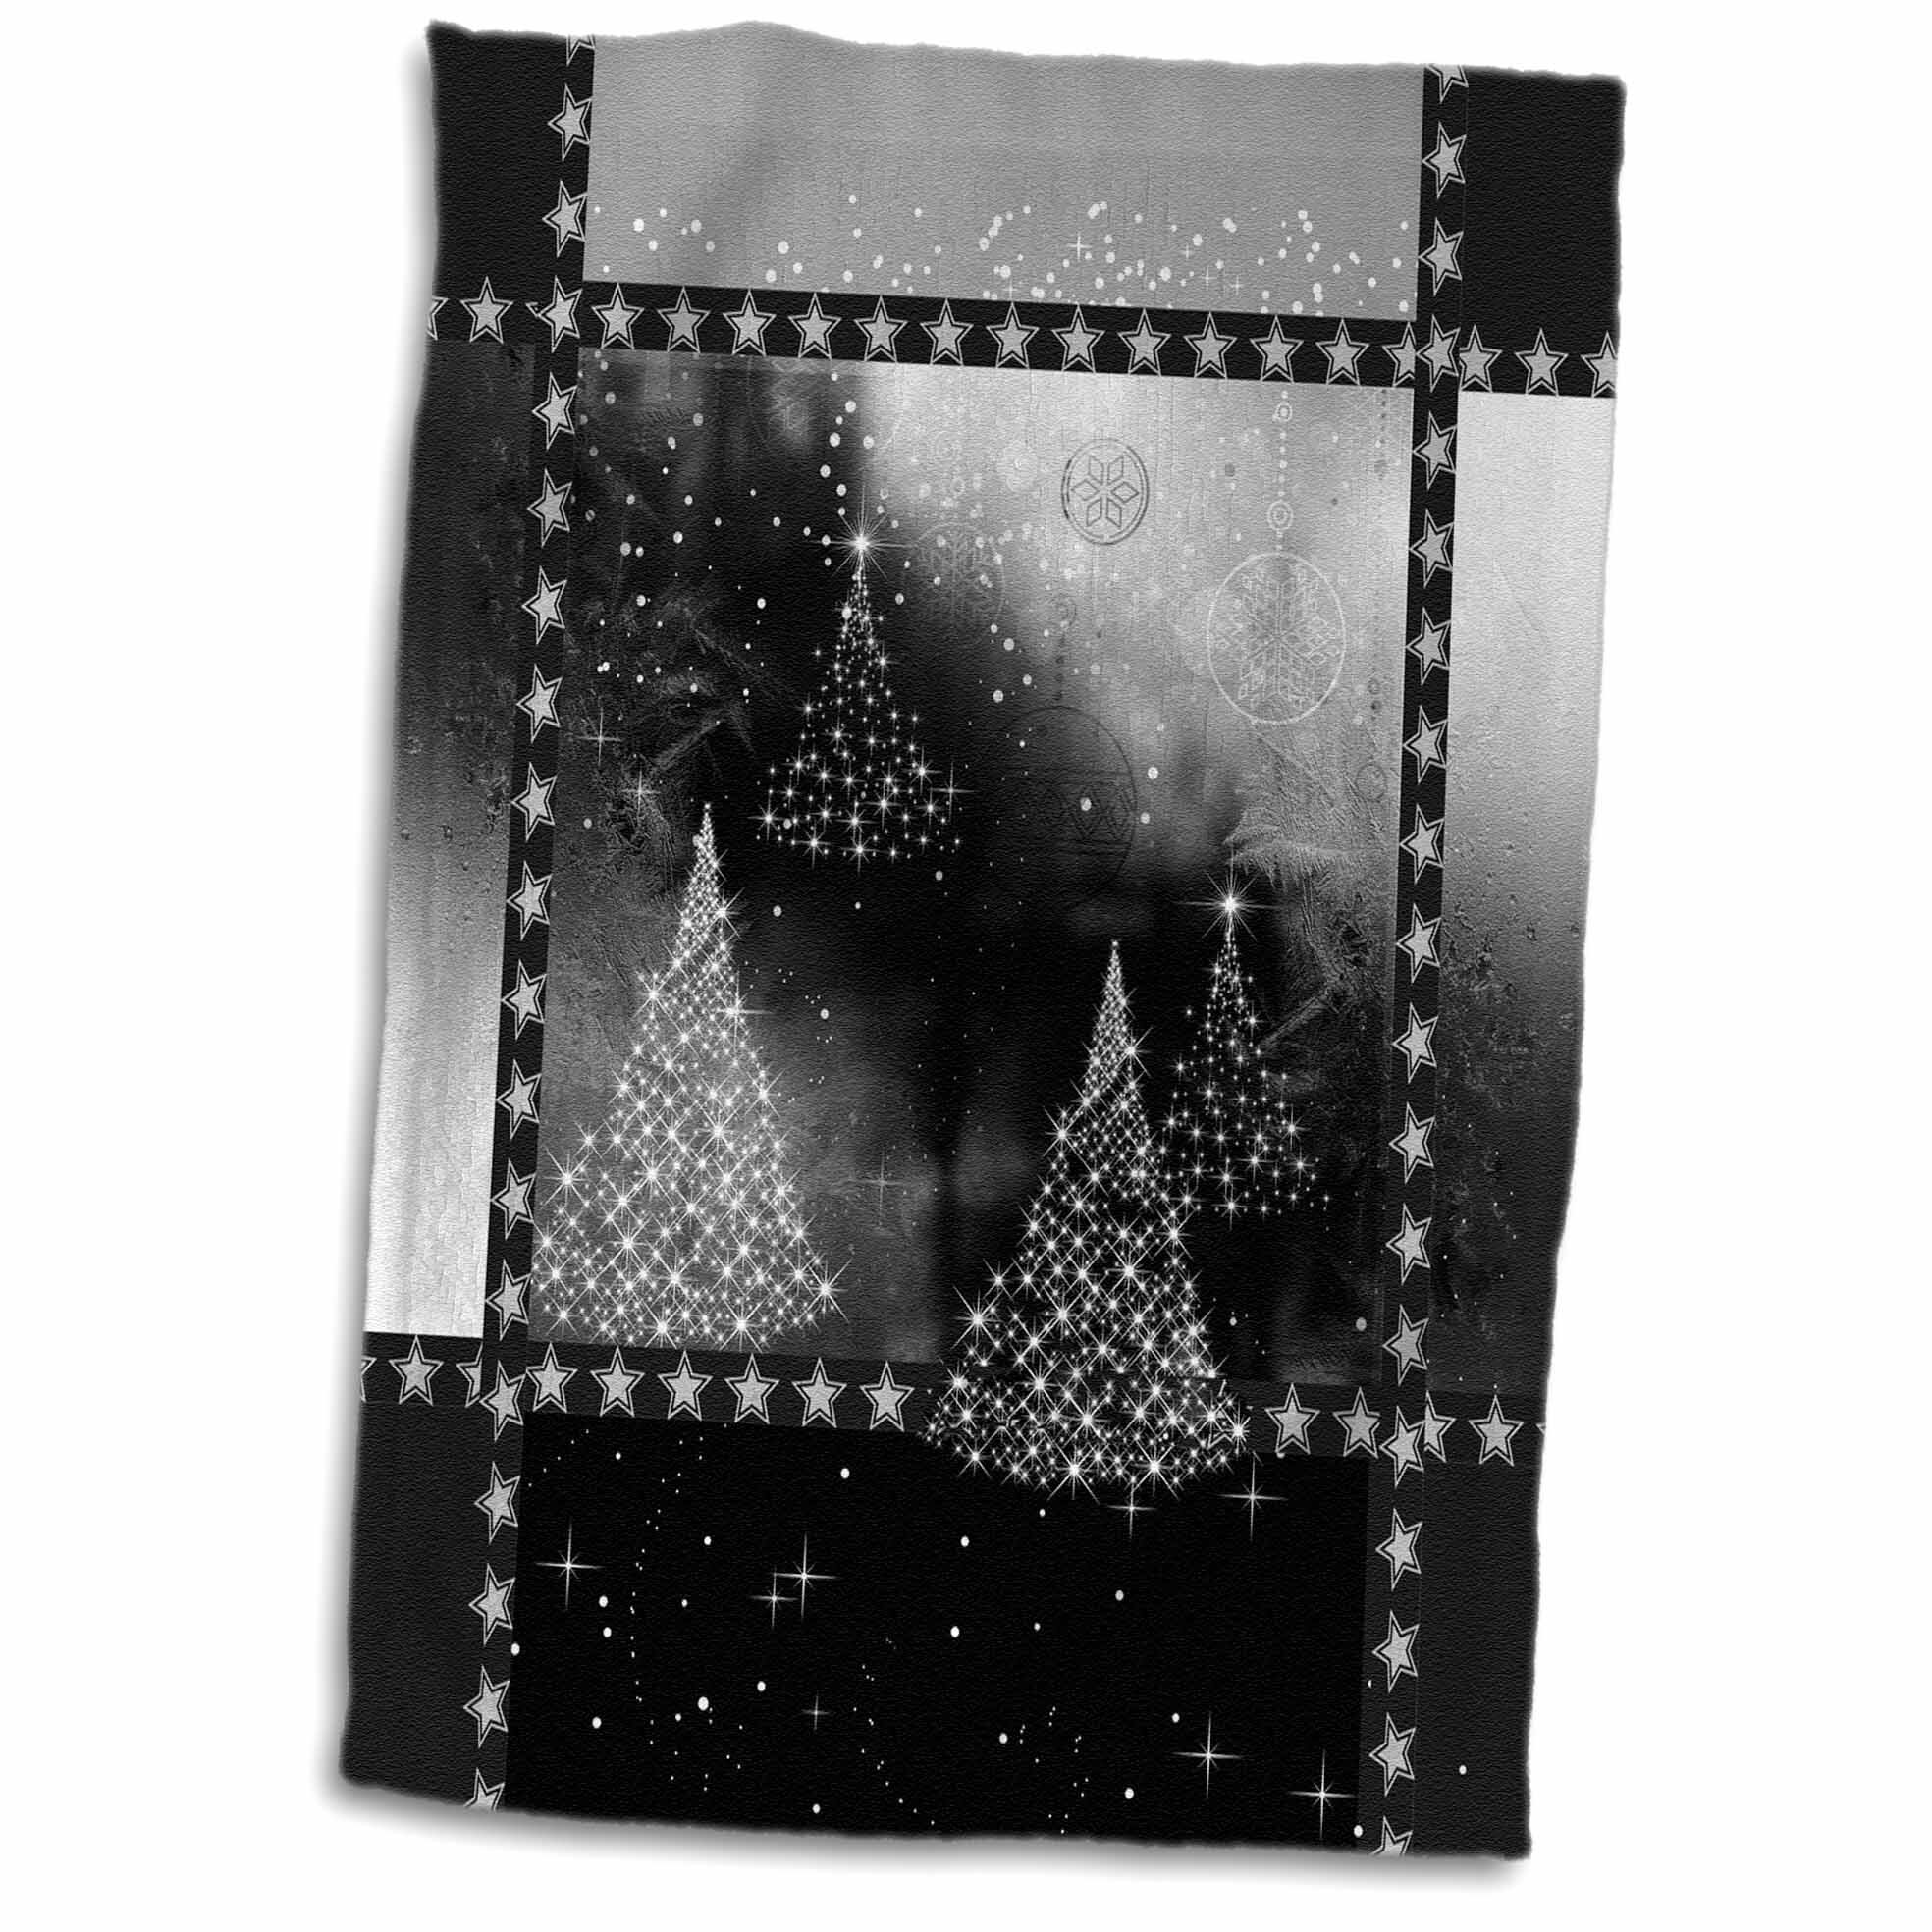 Black Christmas Kitchen Towels You Ll Love In 2021 Wayfair